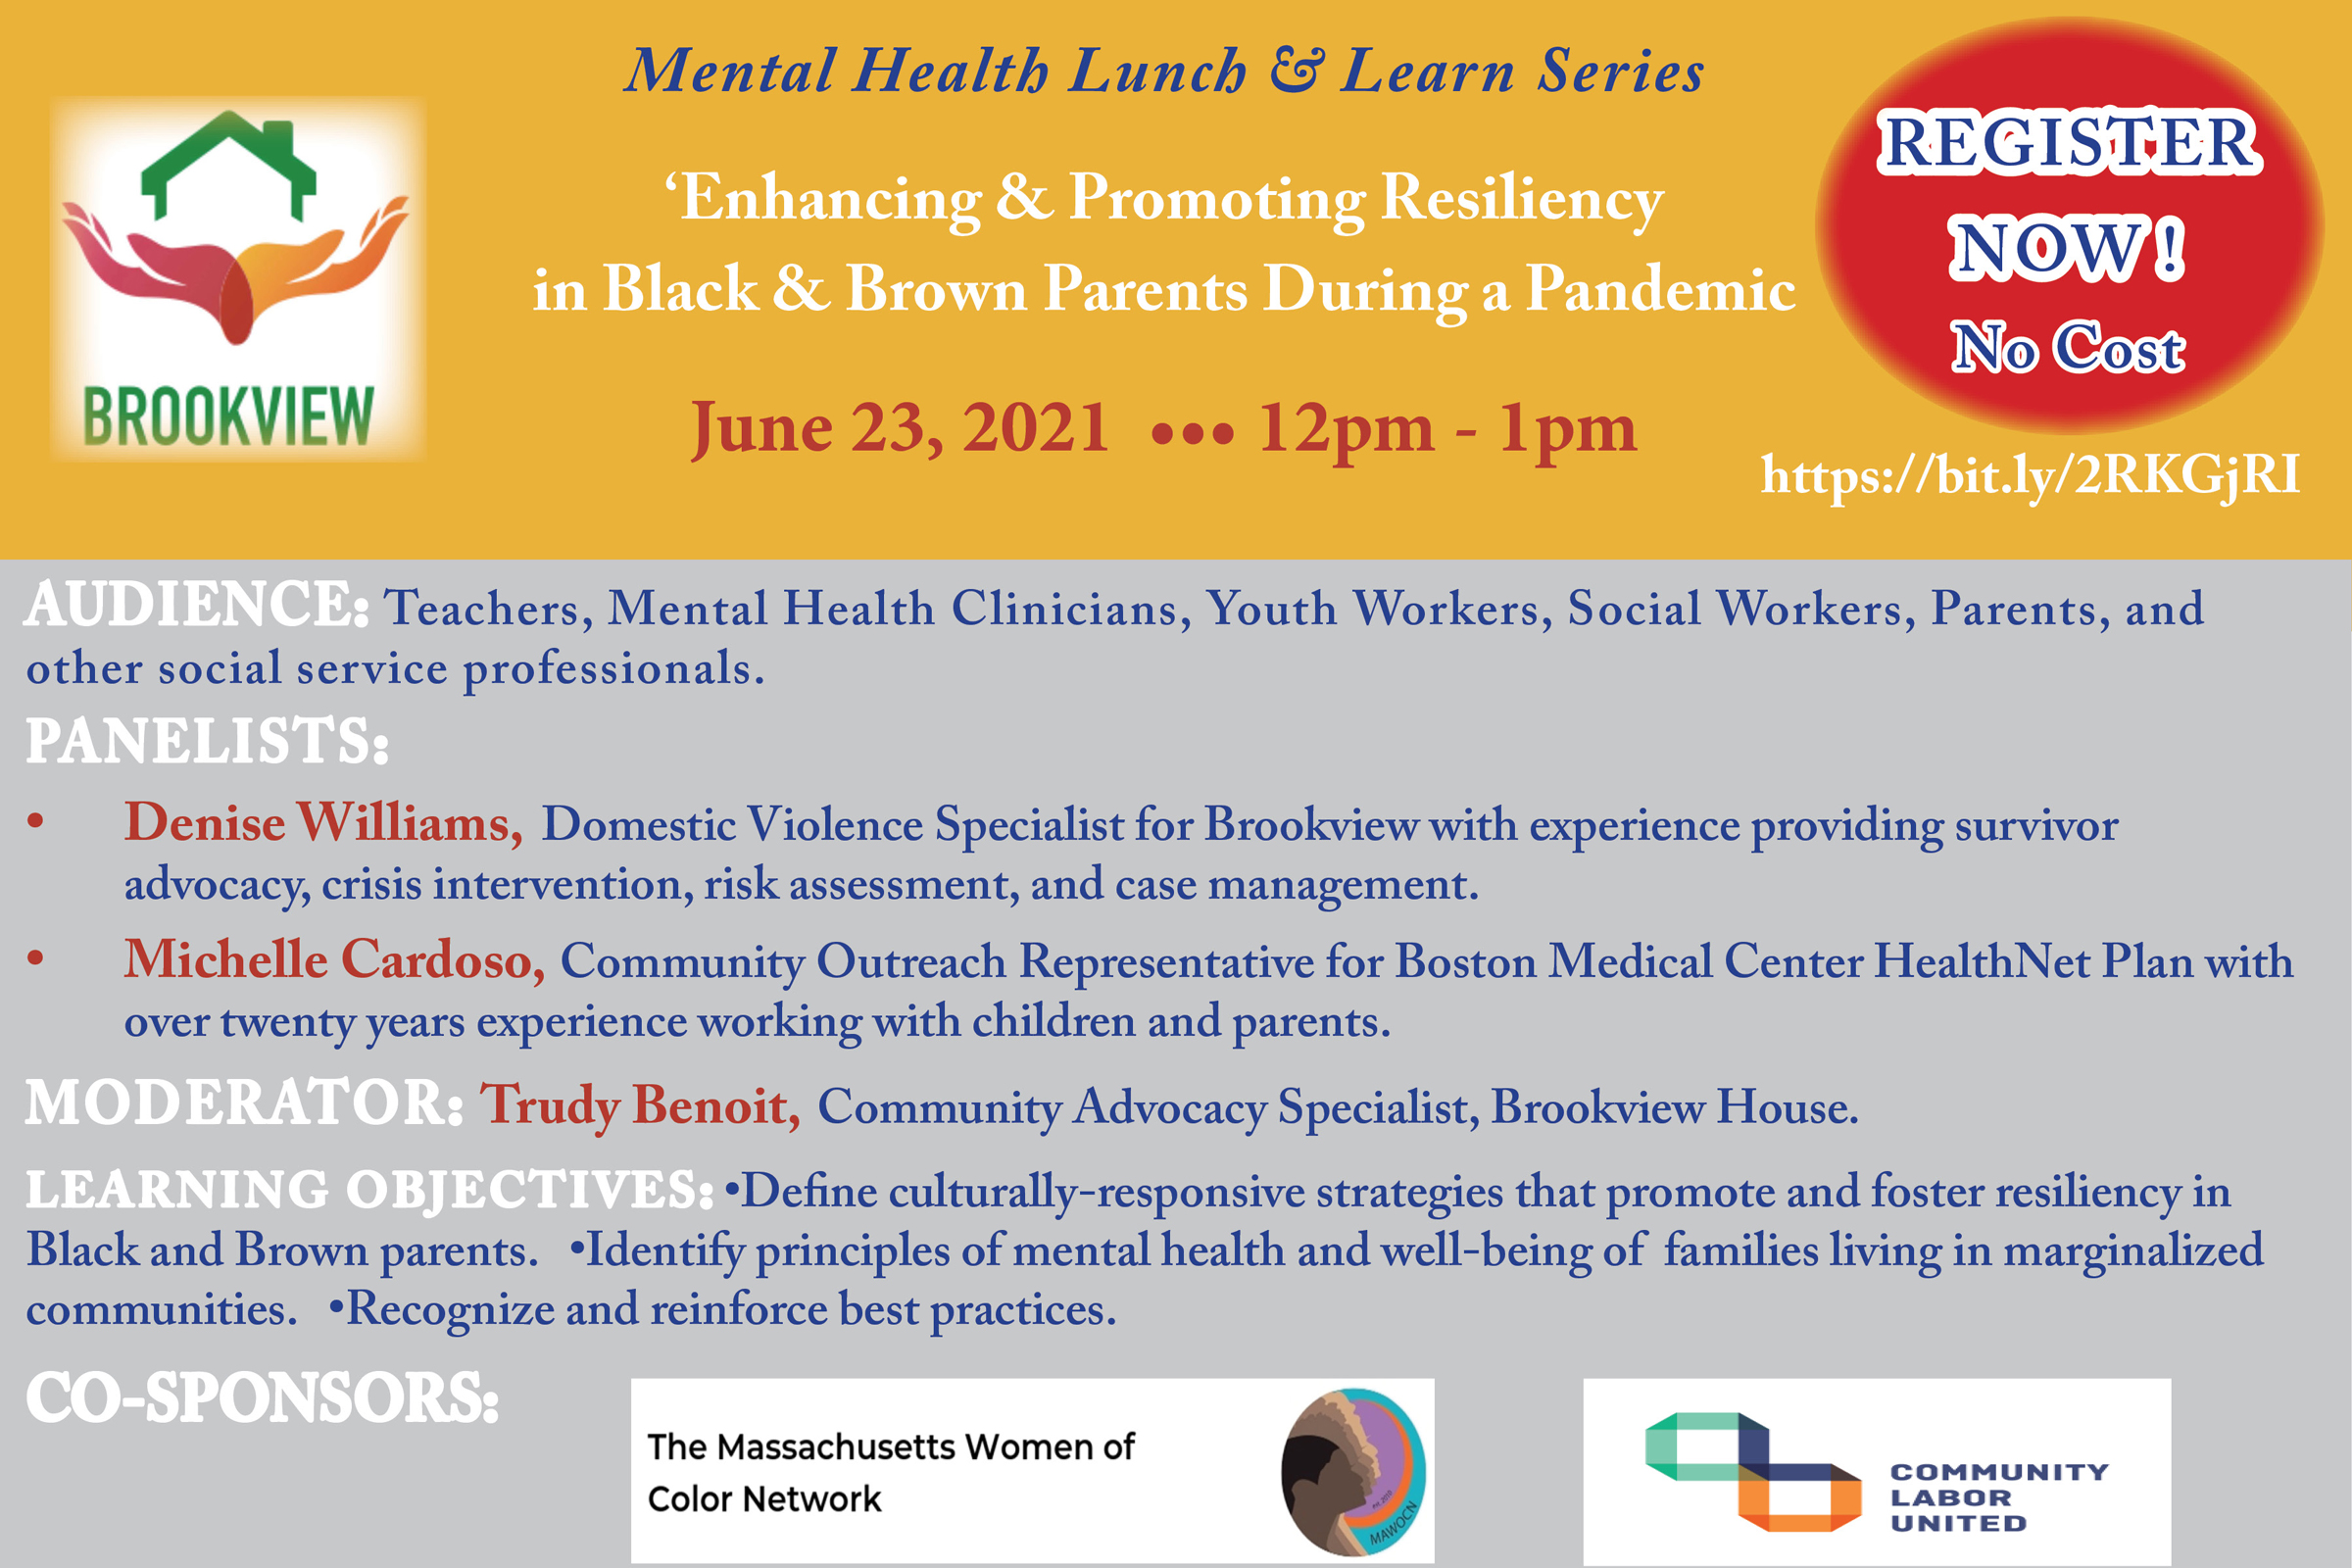 Lunch and Learn Registration